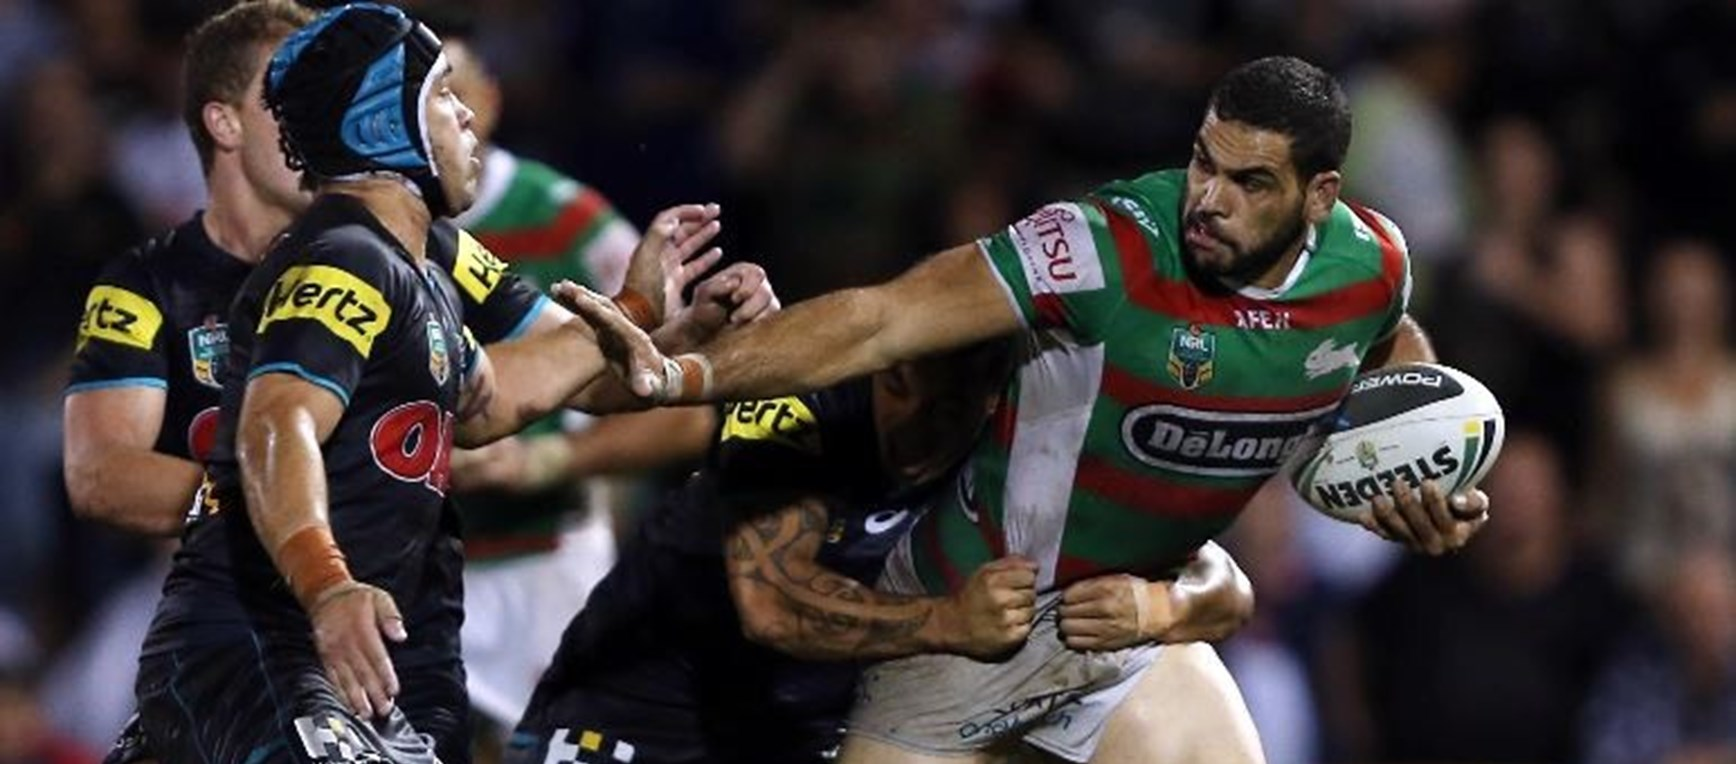 NRL Photo Gallery - Rd 6, 2014